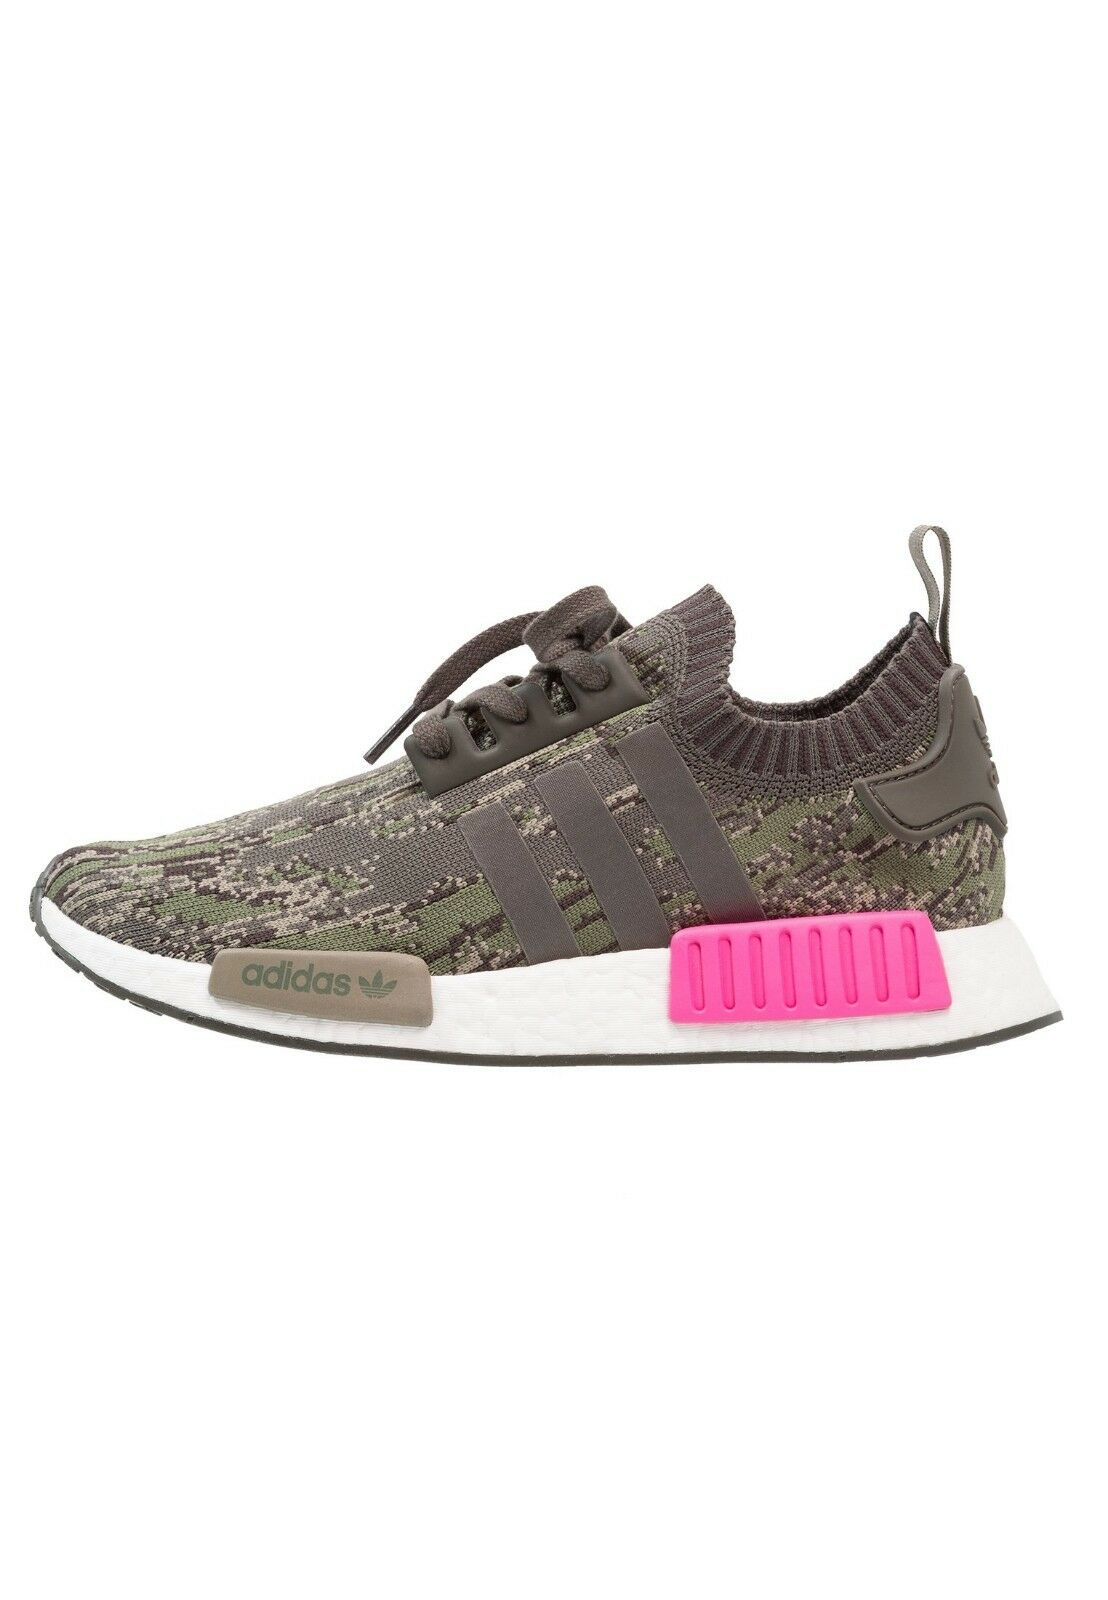 C77154 Baskets Adidas P18f Superstar Basses Unisexe 7dffq4w